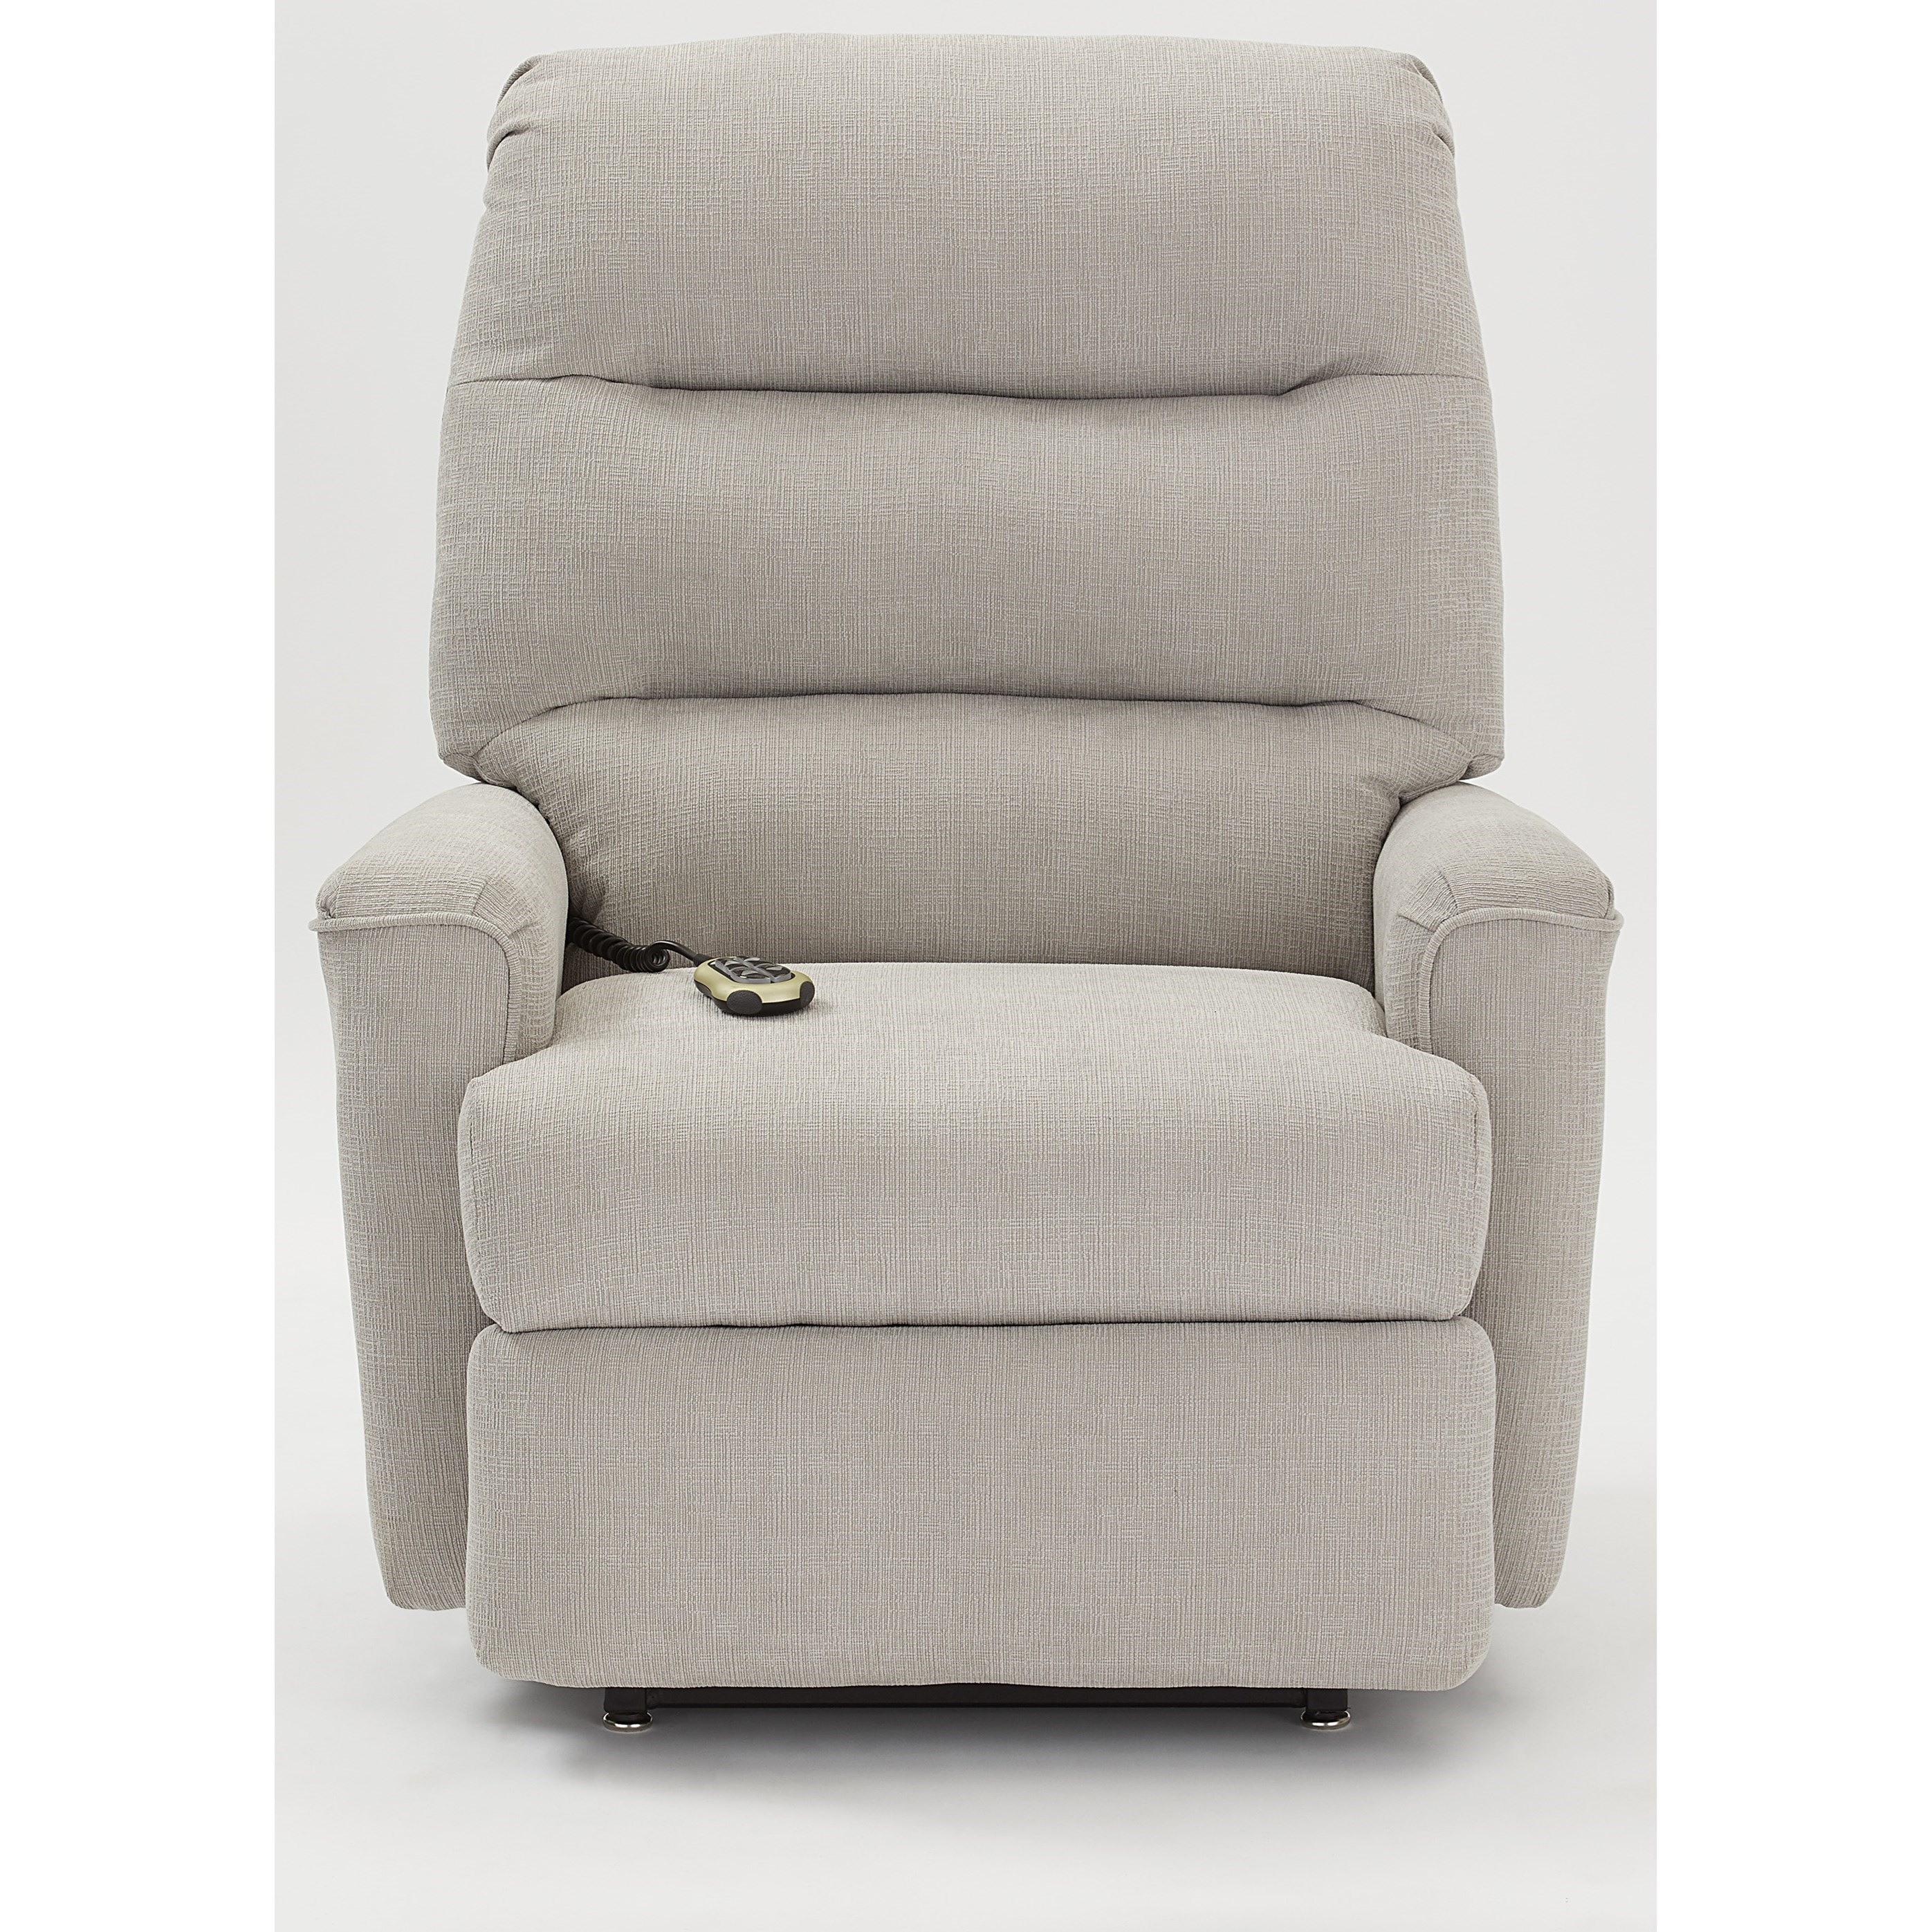 Chia Power Lift Recliner by Best Home Furnishings at Hudson's Furniture